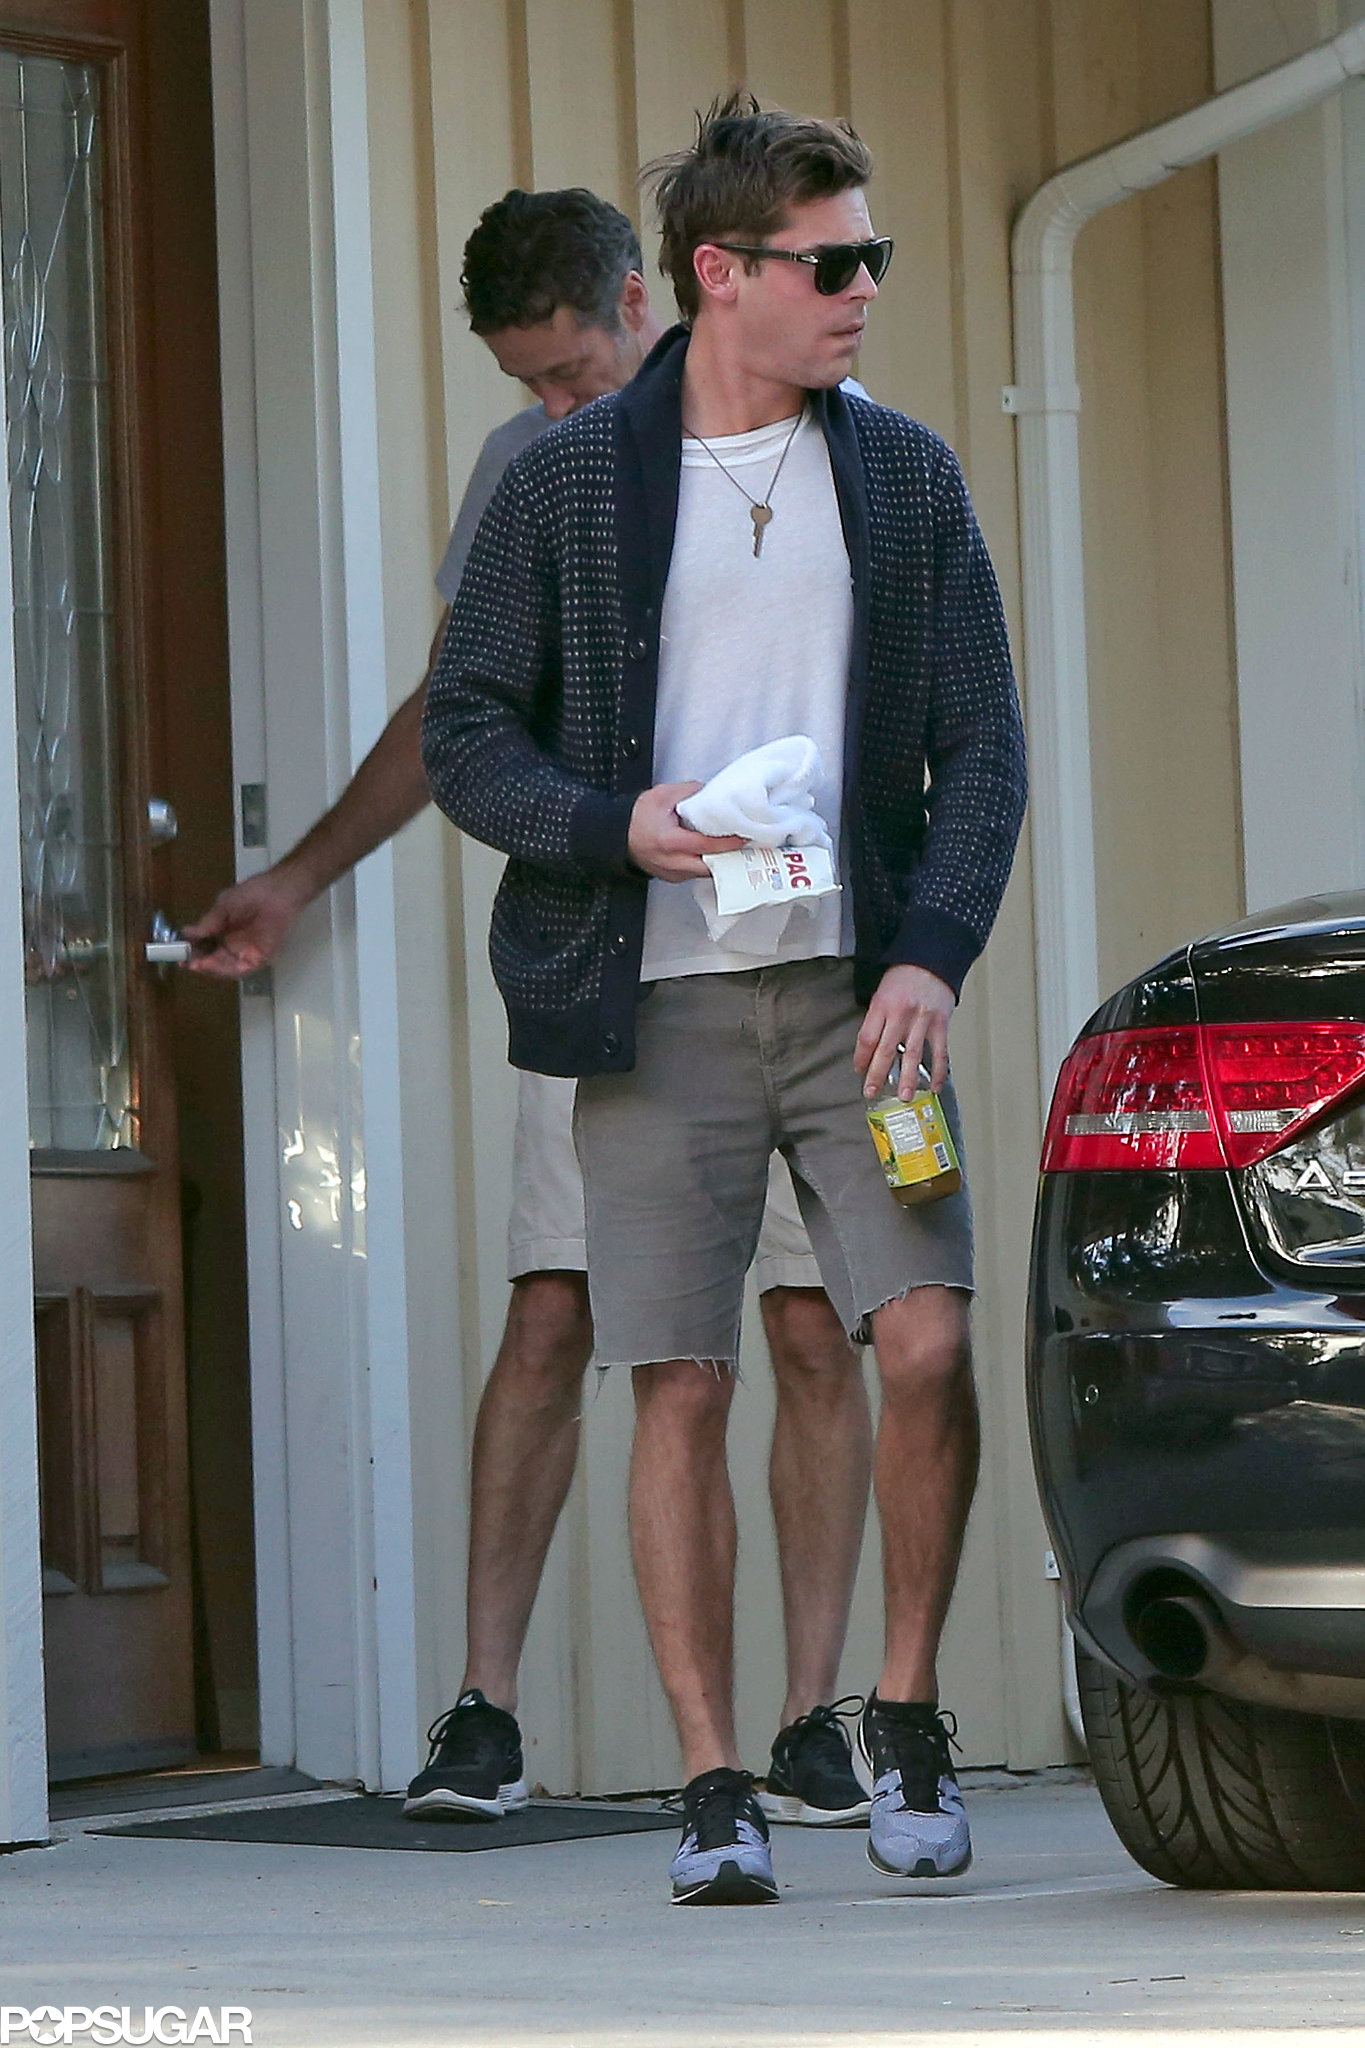 Zac Efron held on to an ice pack while out in LA.  Source: 4CRNS/Gallo/FameFlynet